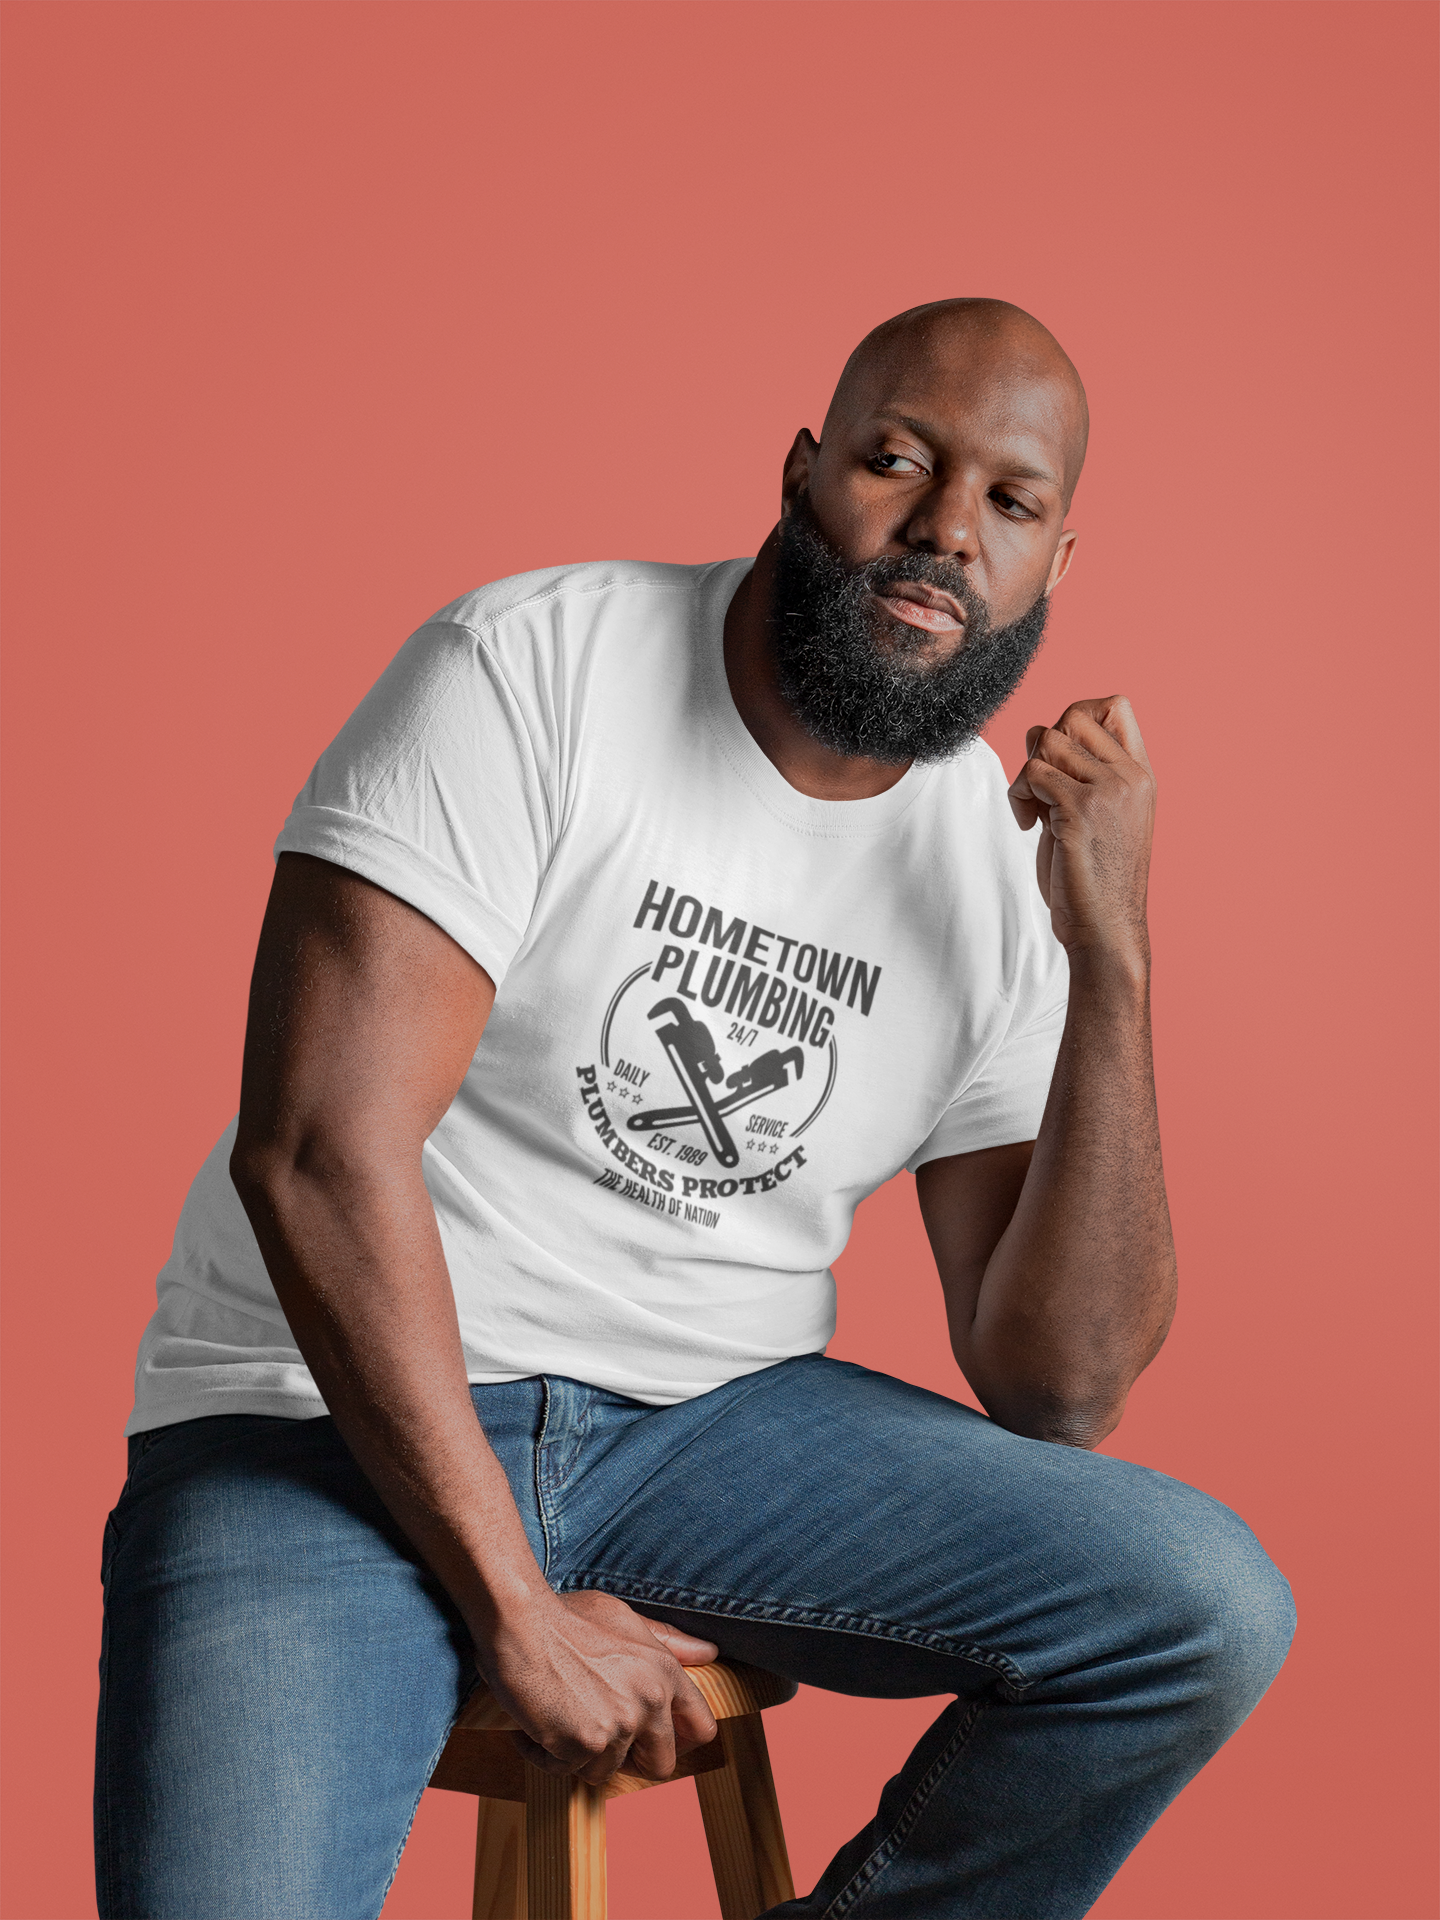 t-shirt-mockup-of-a-thoughtful-man-sitting-on-a-chair-21535.png